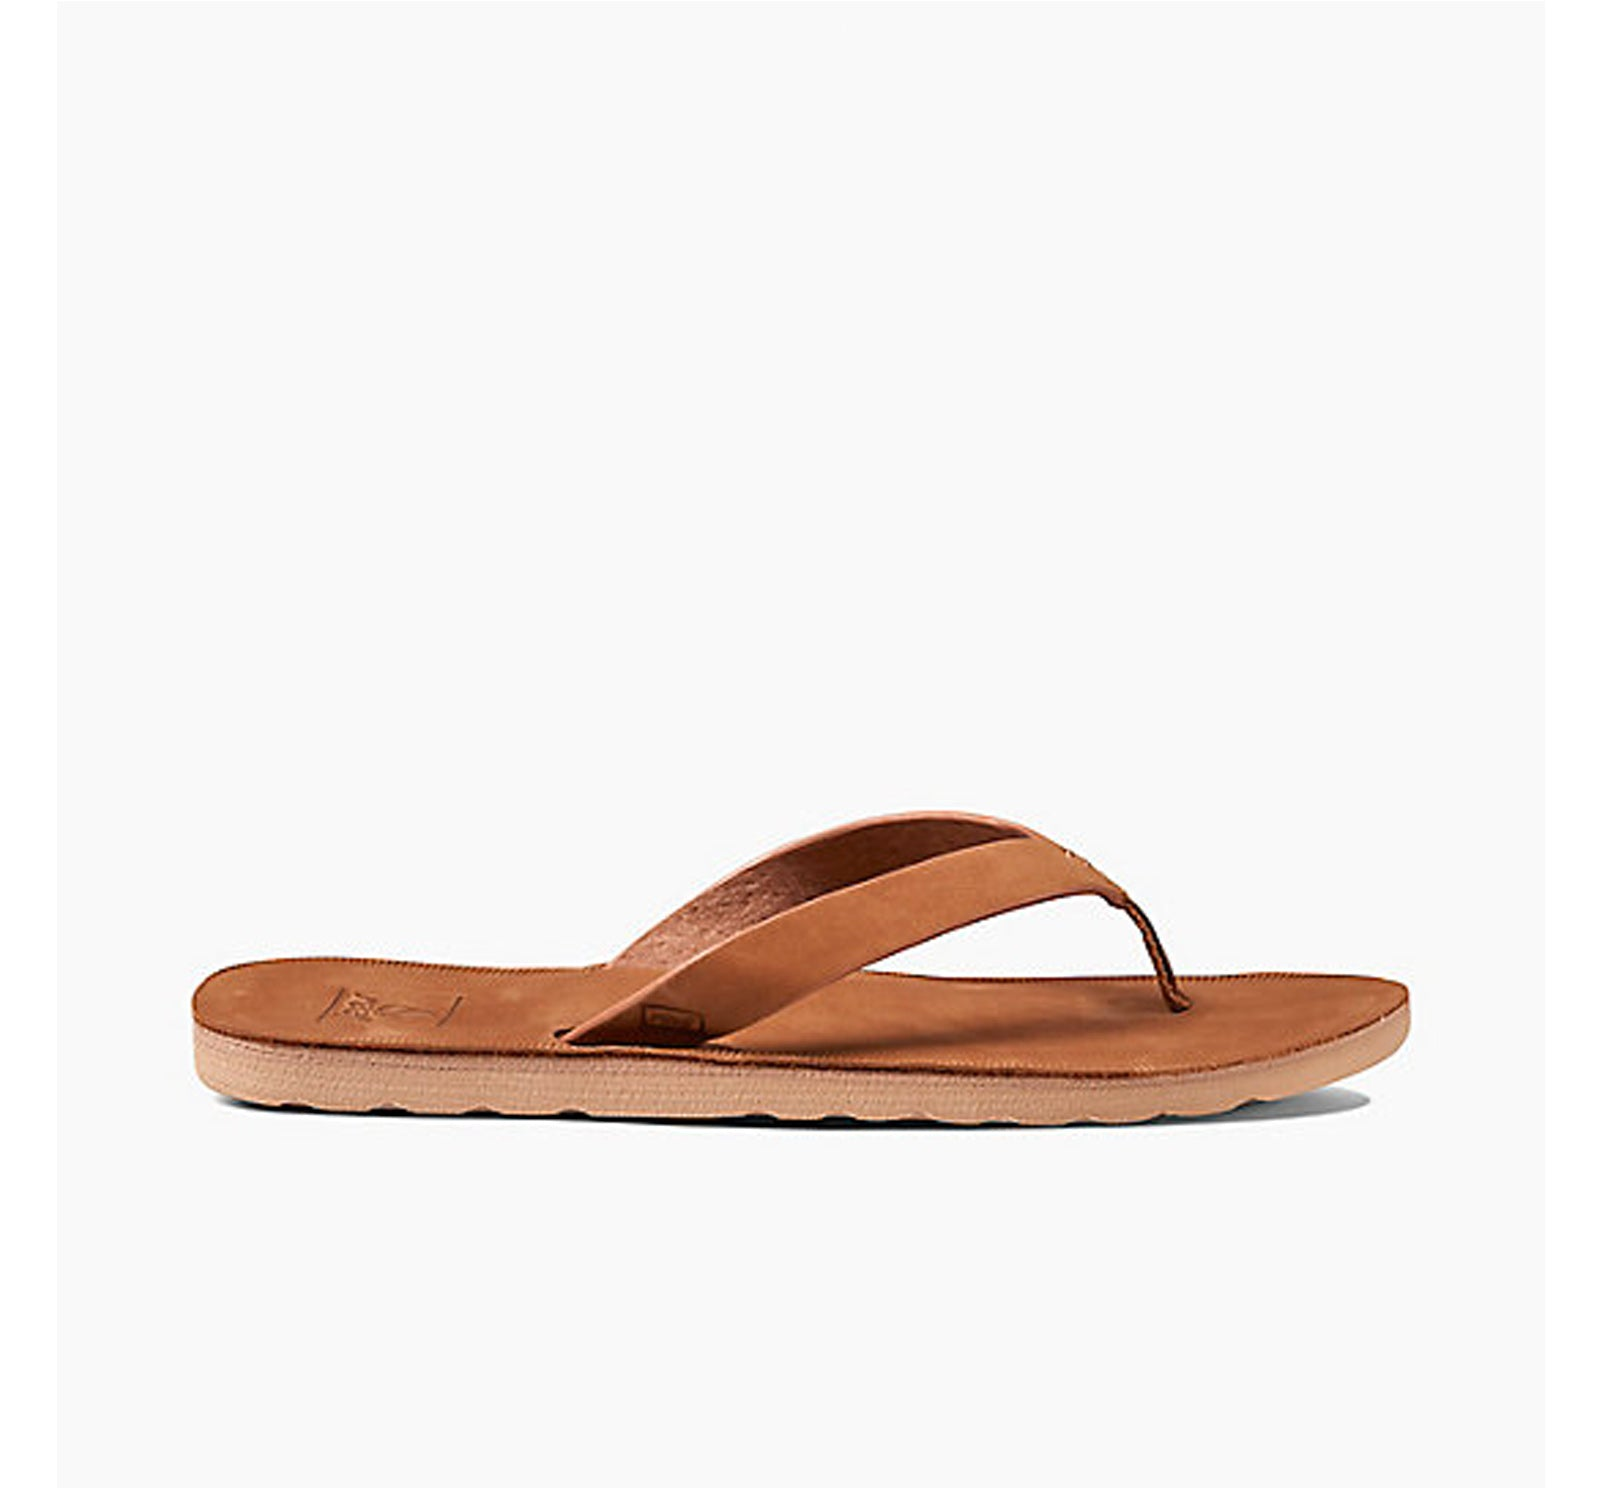 Reef Voyage Leather Women's Sandals